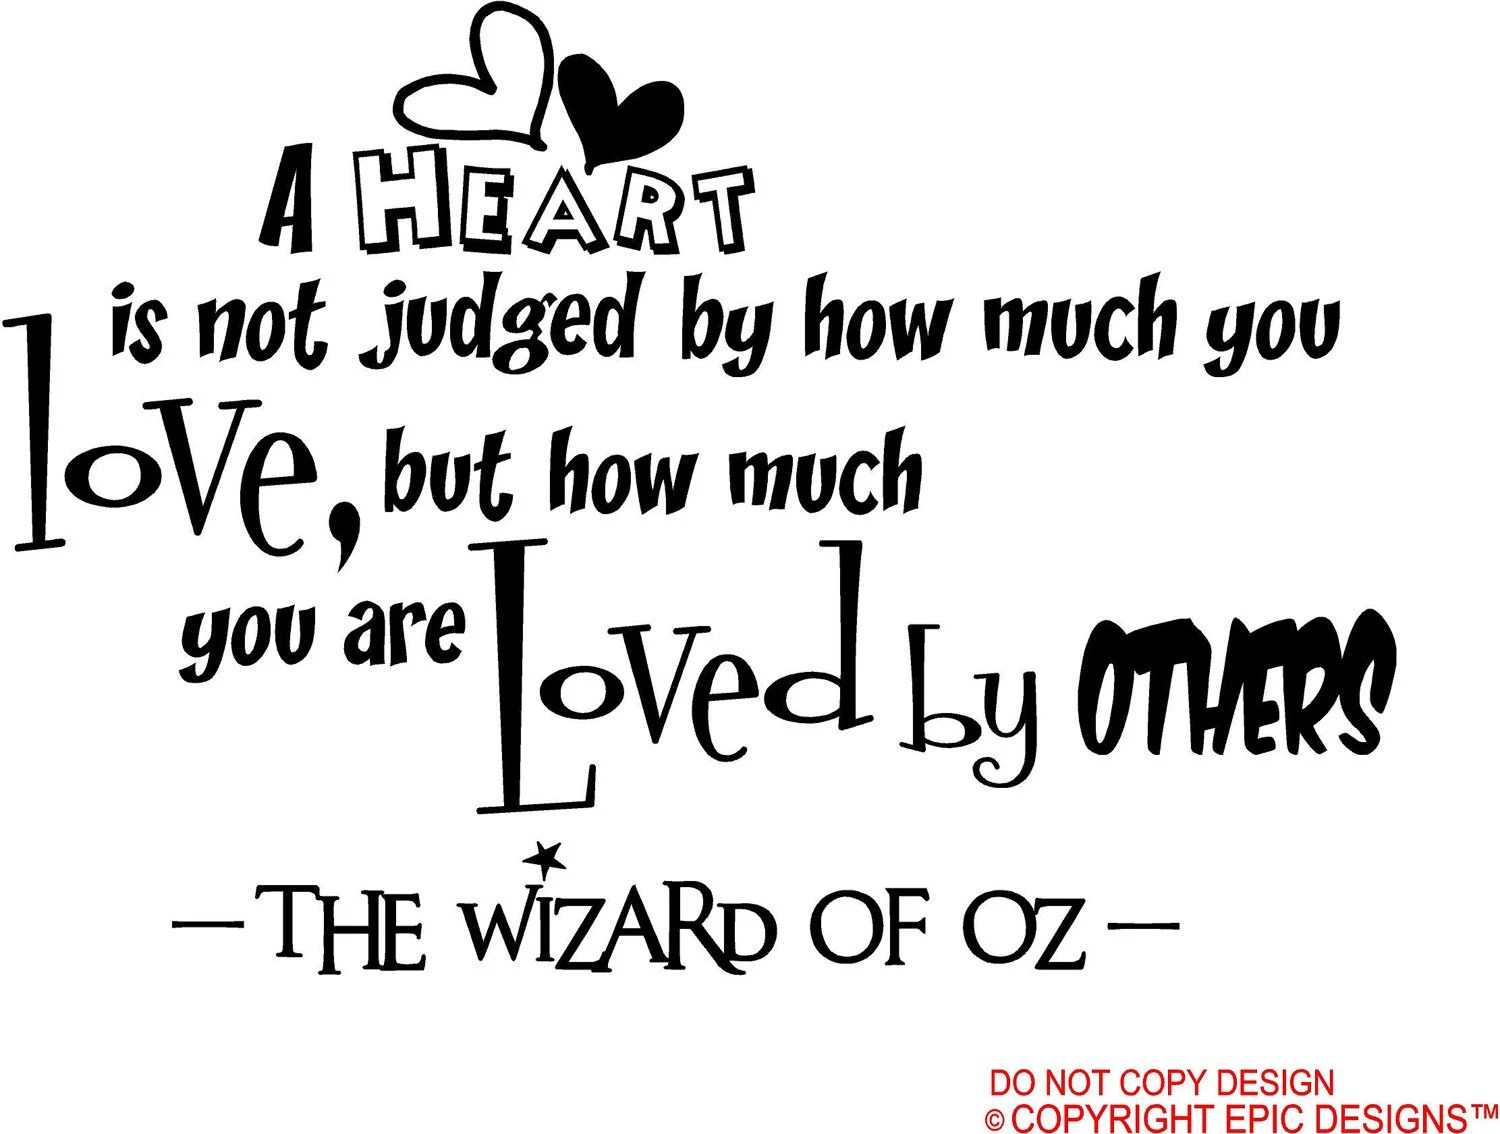 Items similar to A heart is not judged by how much you